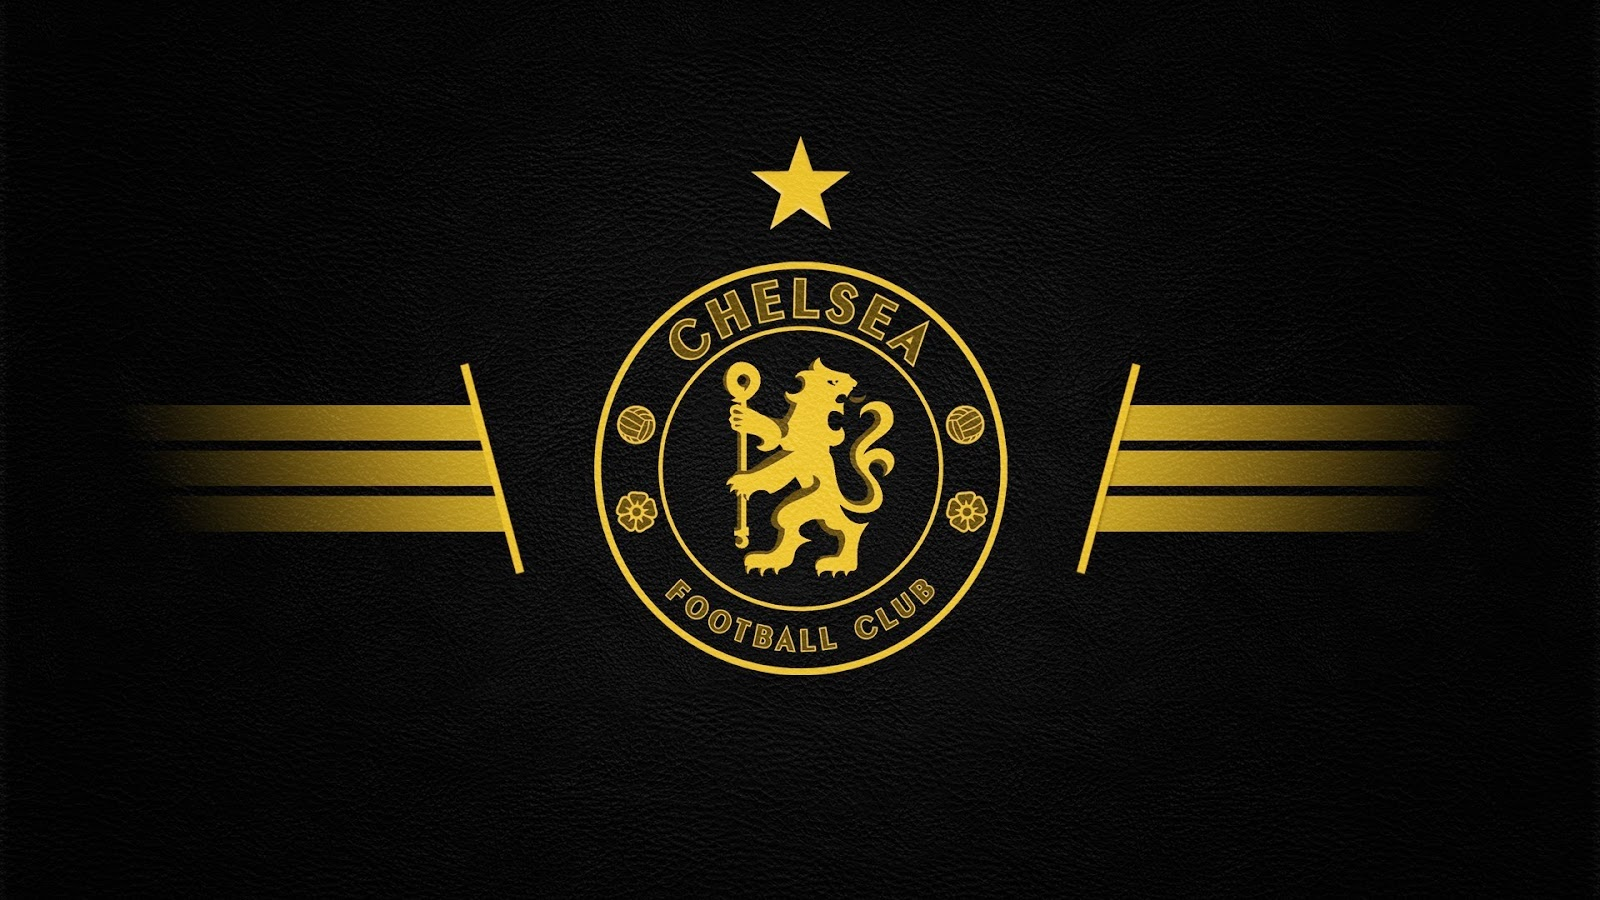 Chelsea Football Club HD Wallpapers 1600x900